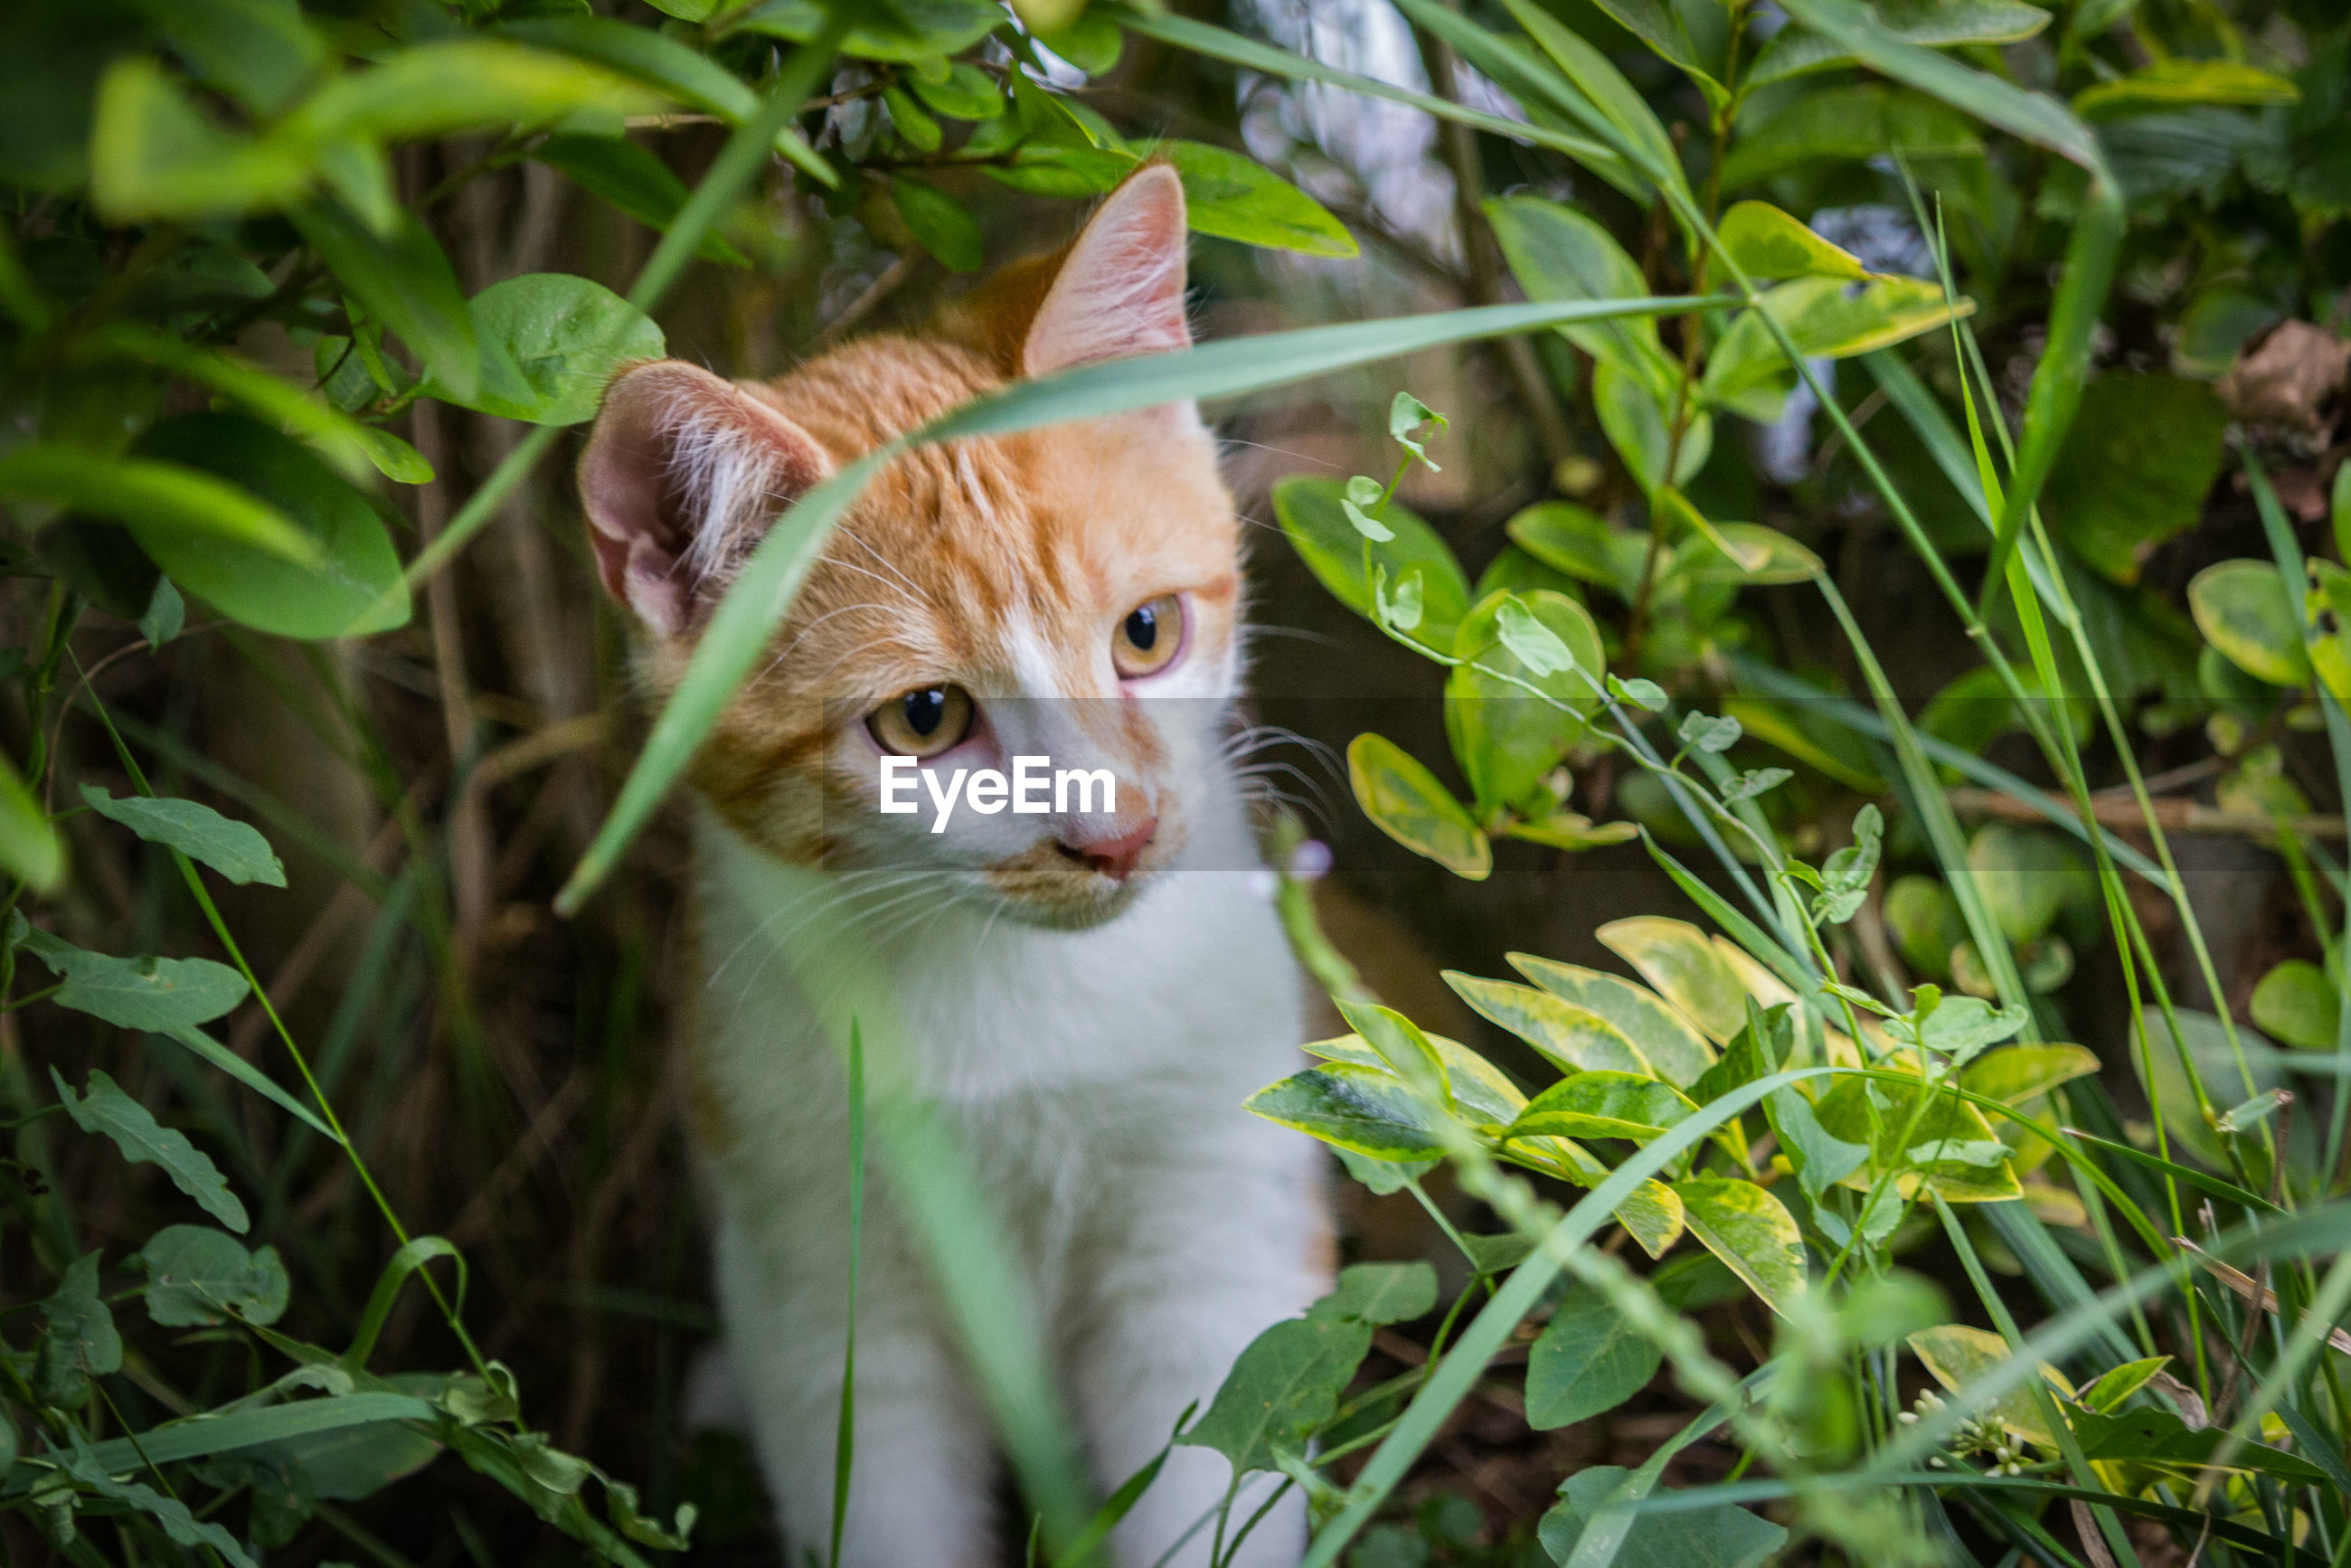 PORTRAIT OF CAT IN GREEN PLANT